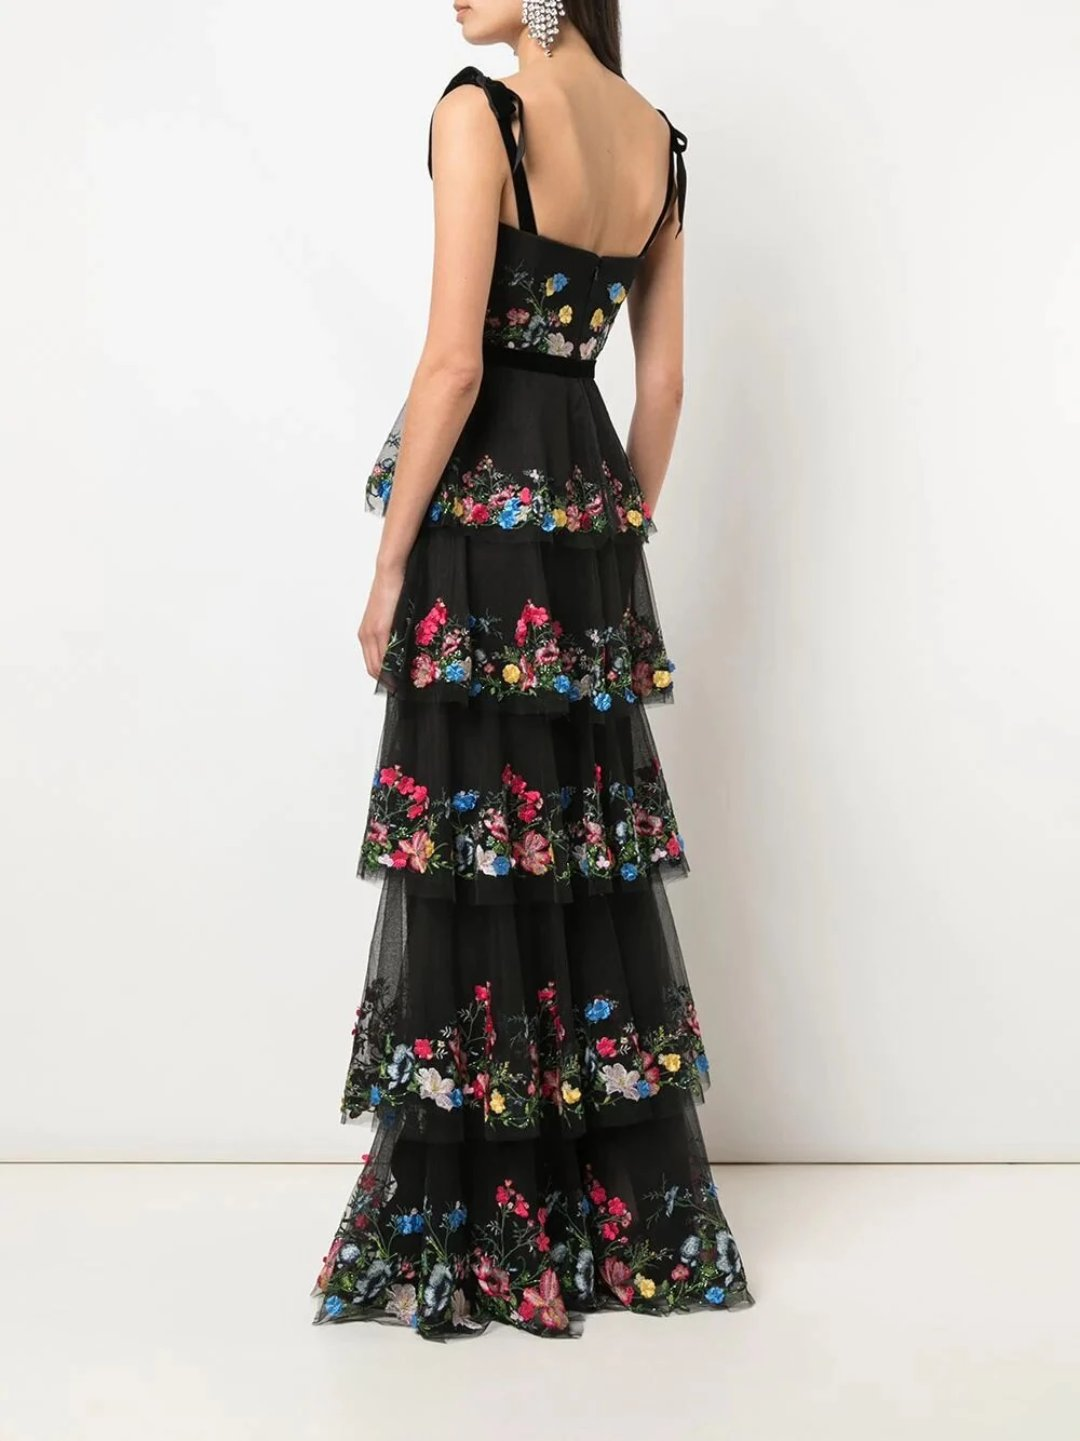 5-Tier 3D Embroidered Tulle Gown